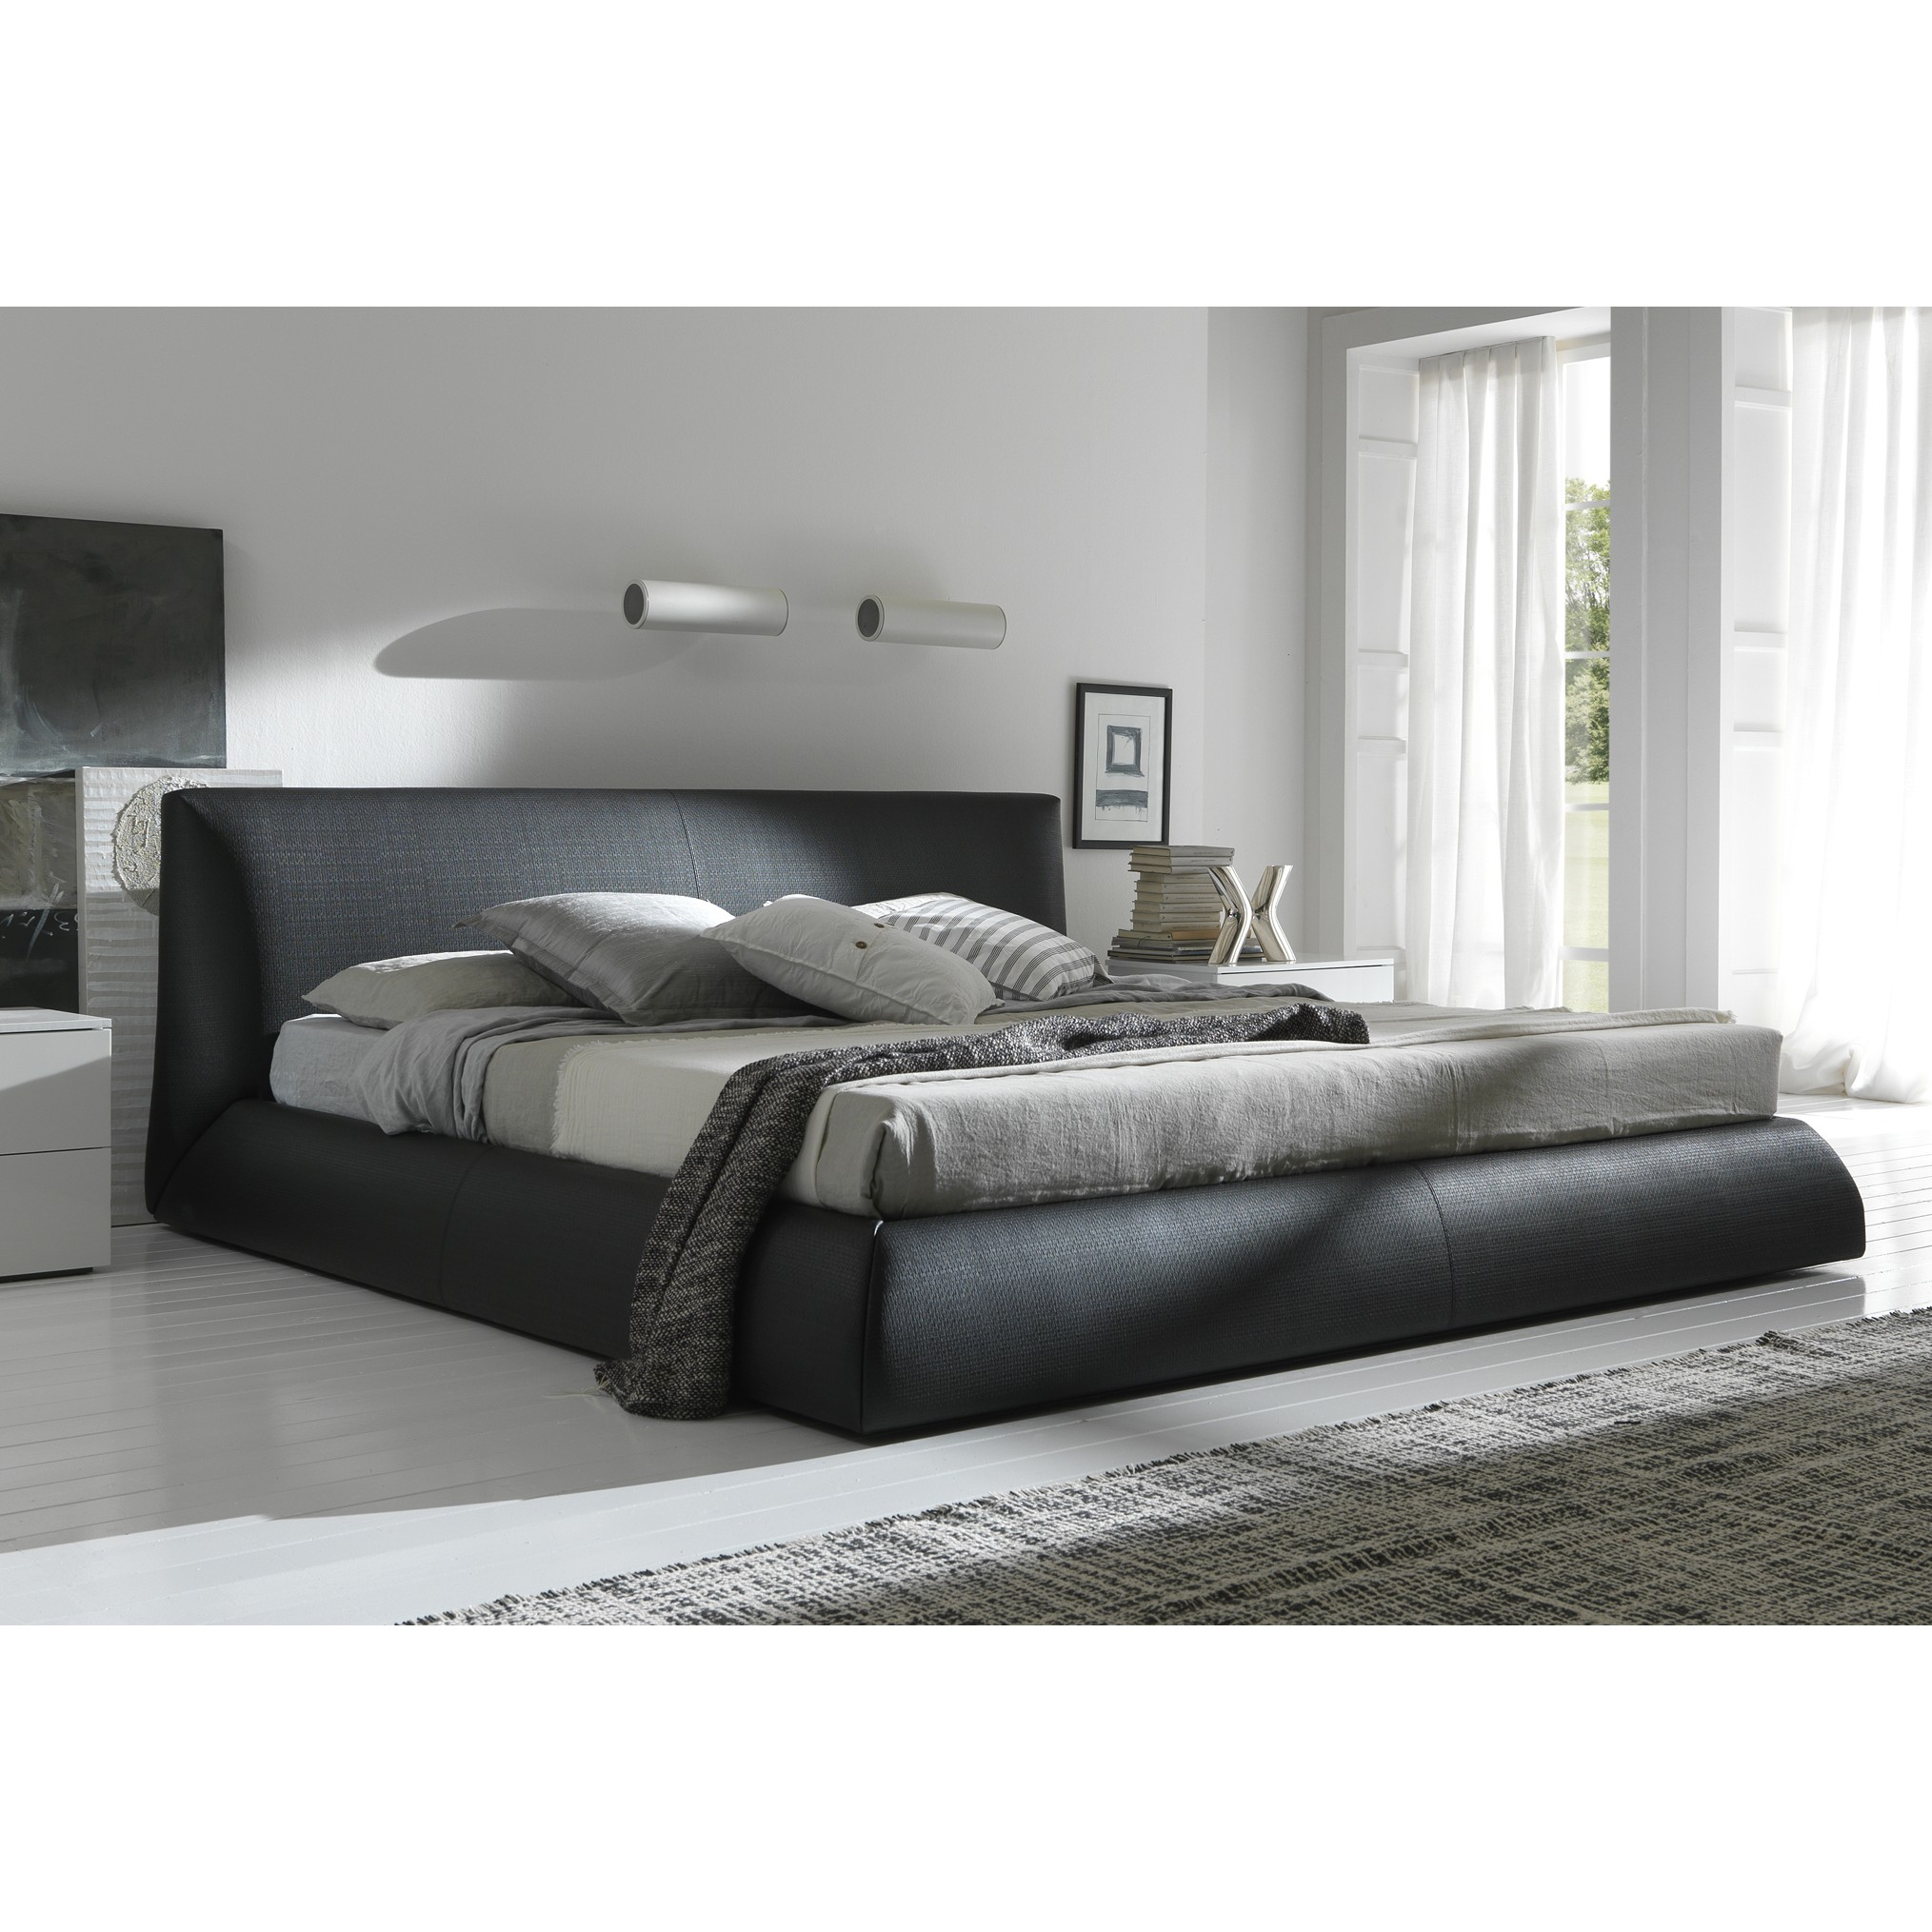 gray queen size platform bed with curtains